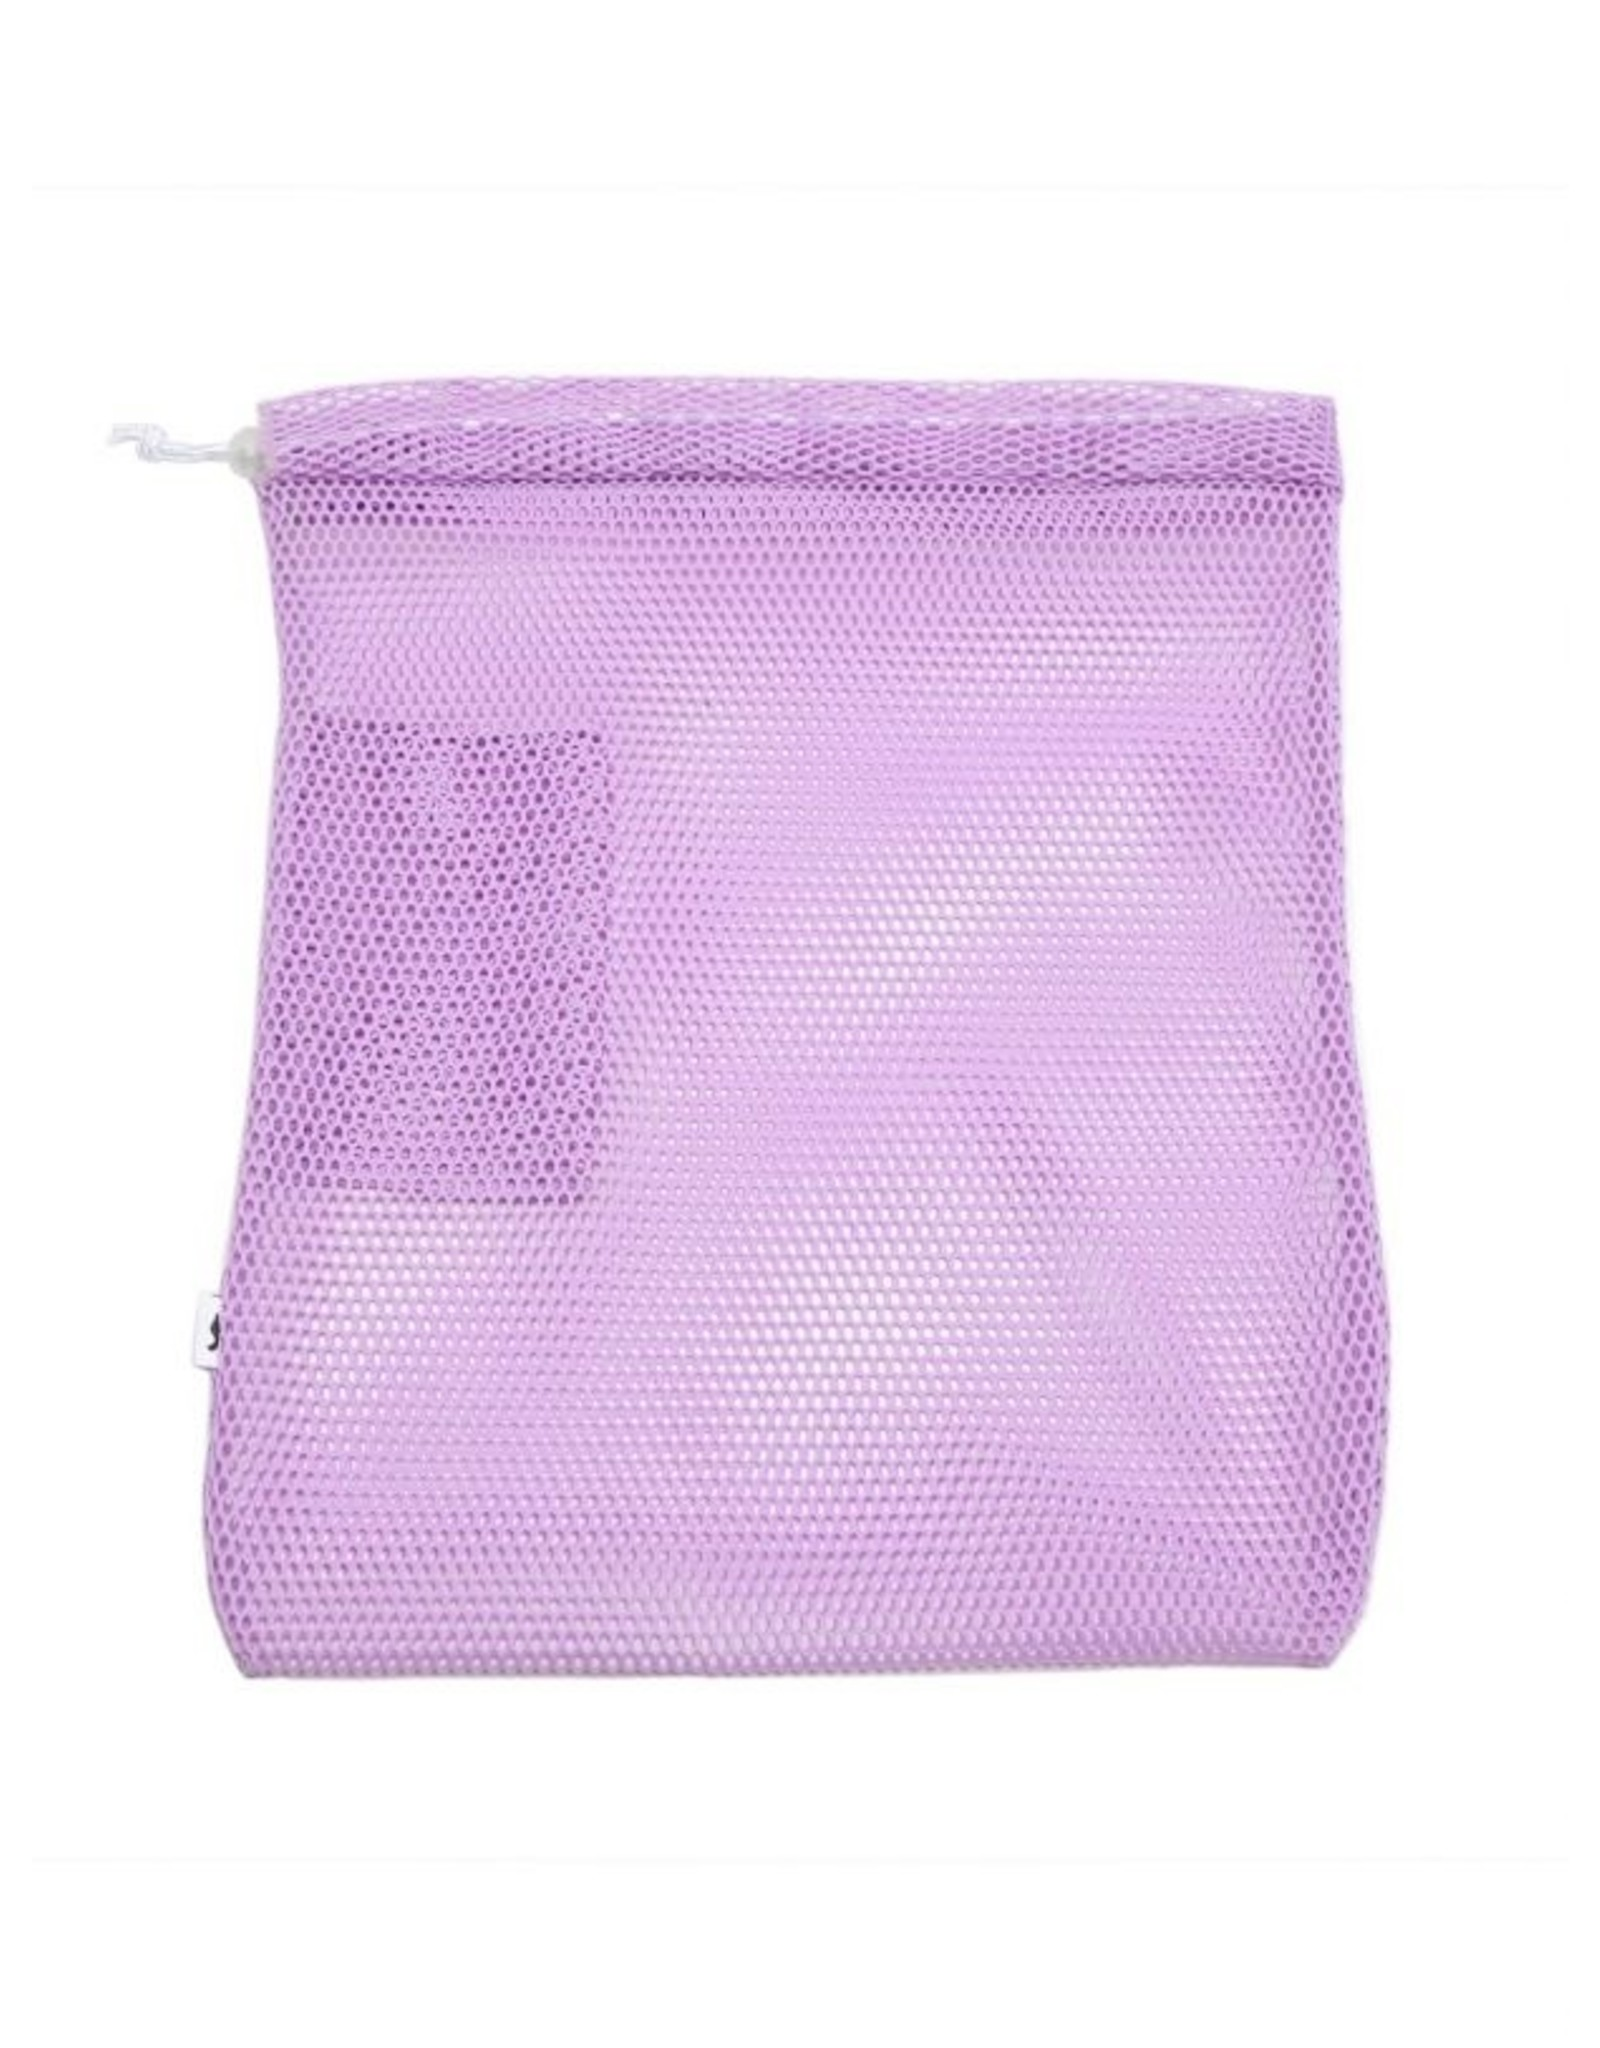 COLORED MESH BAG WITH DRAWSTRING